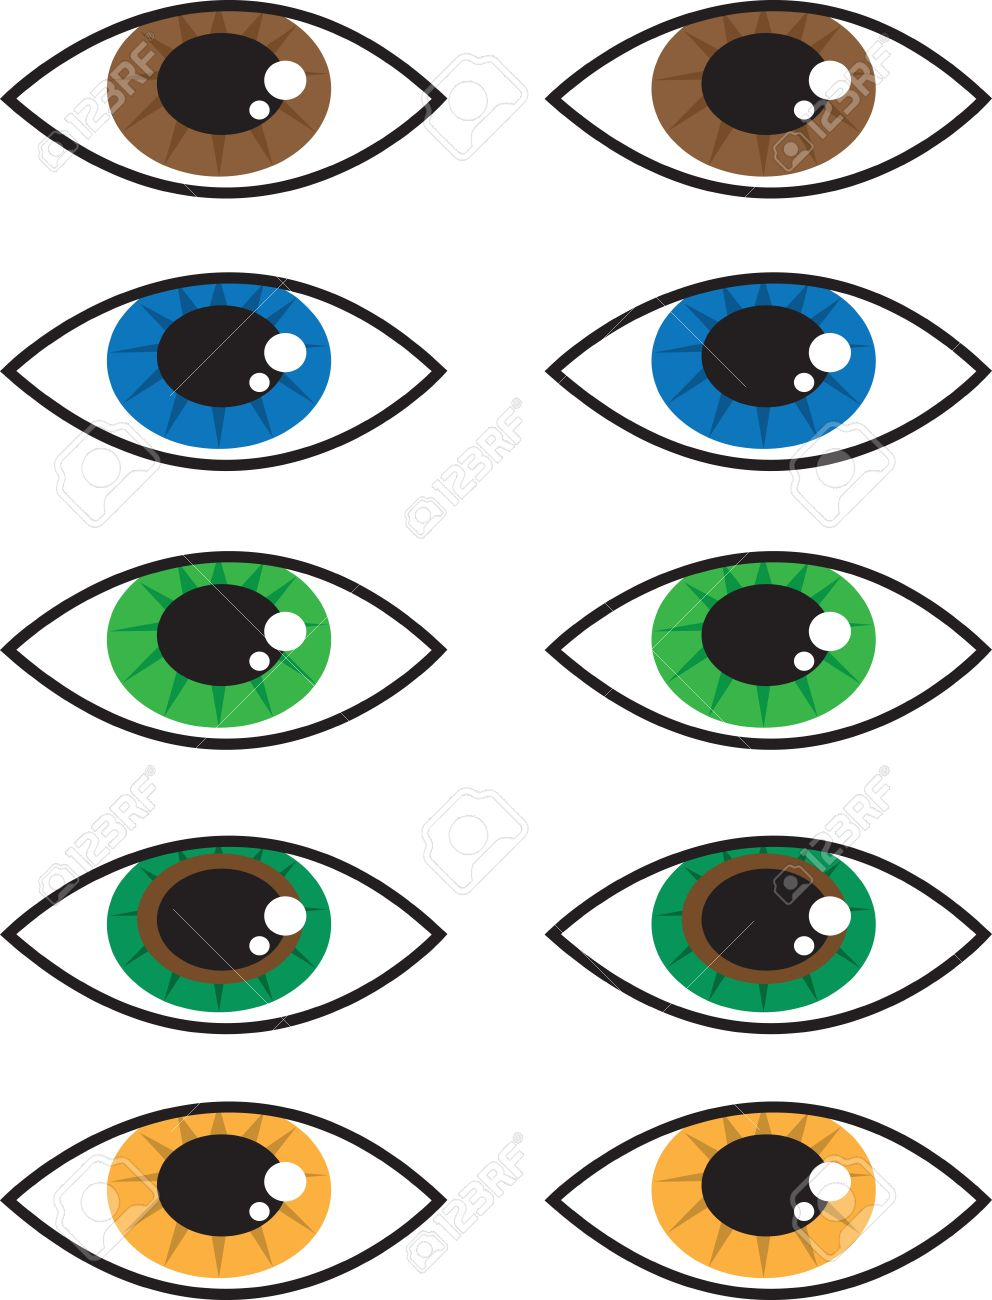 Various Isolated Cartoon Eye Colors Royalty Free Cliparts, Vectors.